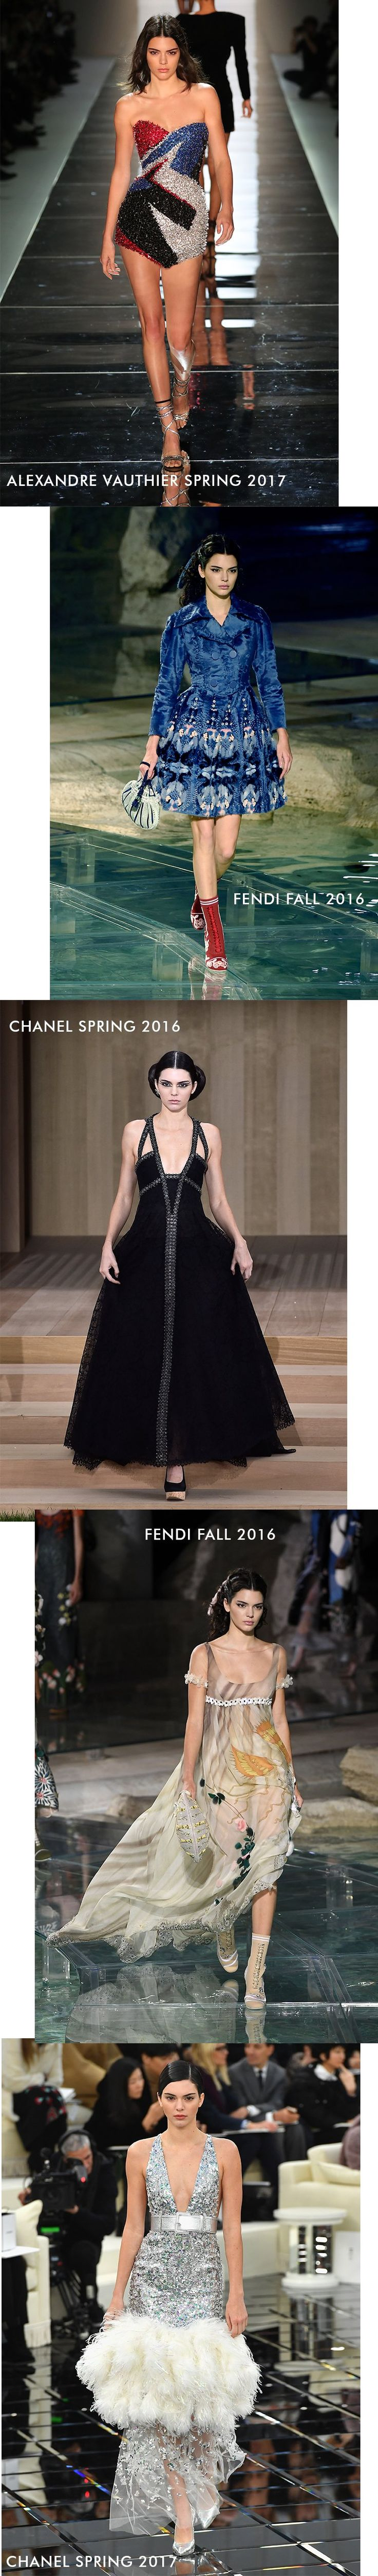 Kendall Jenner Runway Haute Couture Gallery - Kendall